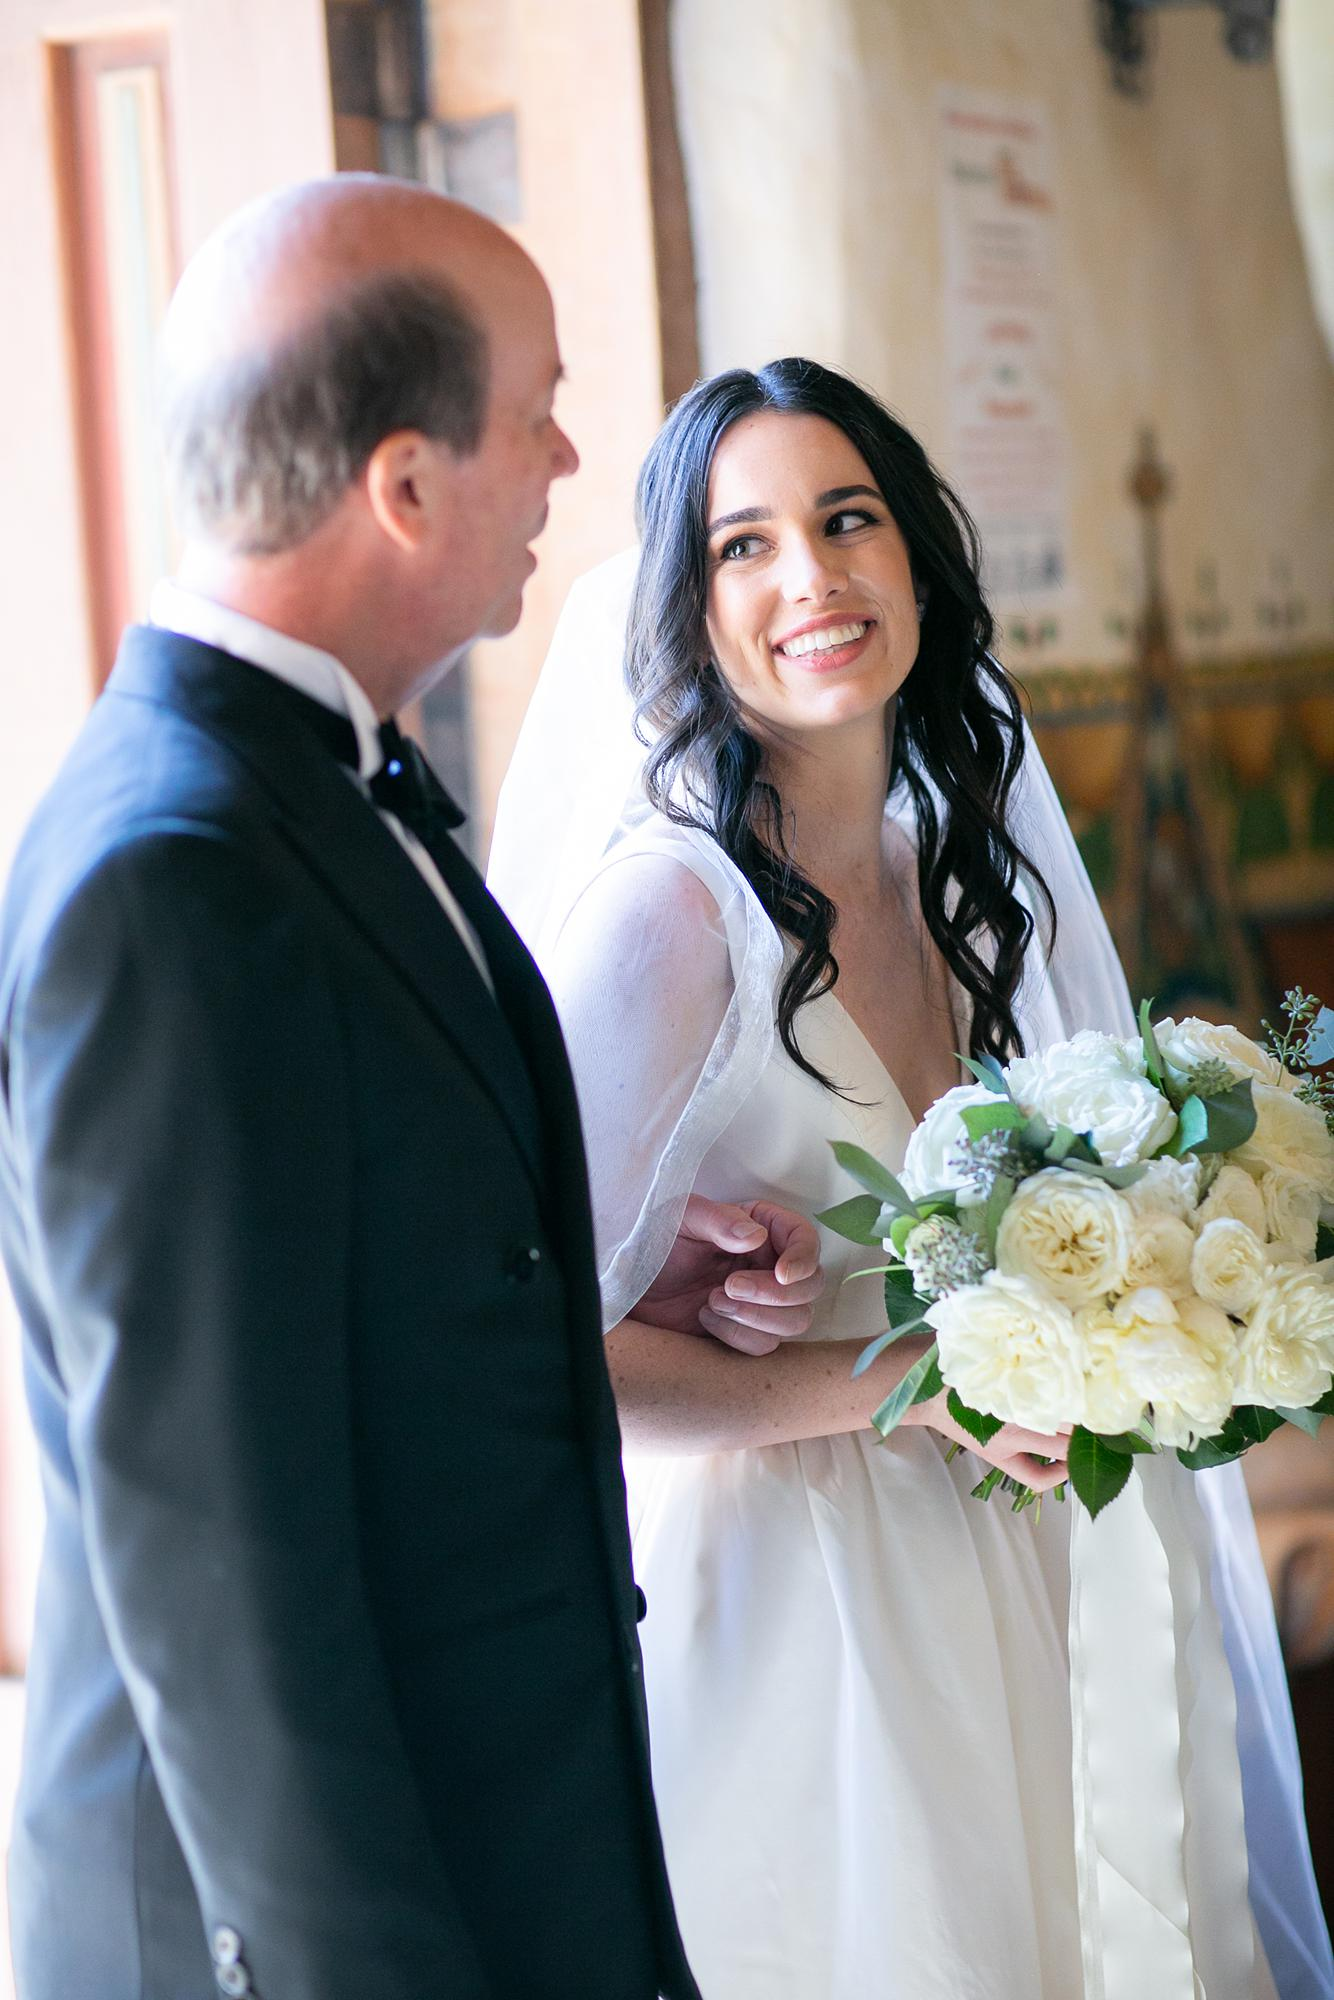 Our Lady of Mount Carmel Santa Barbara Wedding | Miki & Sonja Photography | mikiandsonja.com